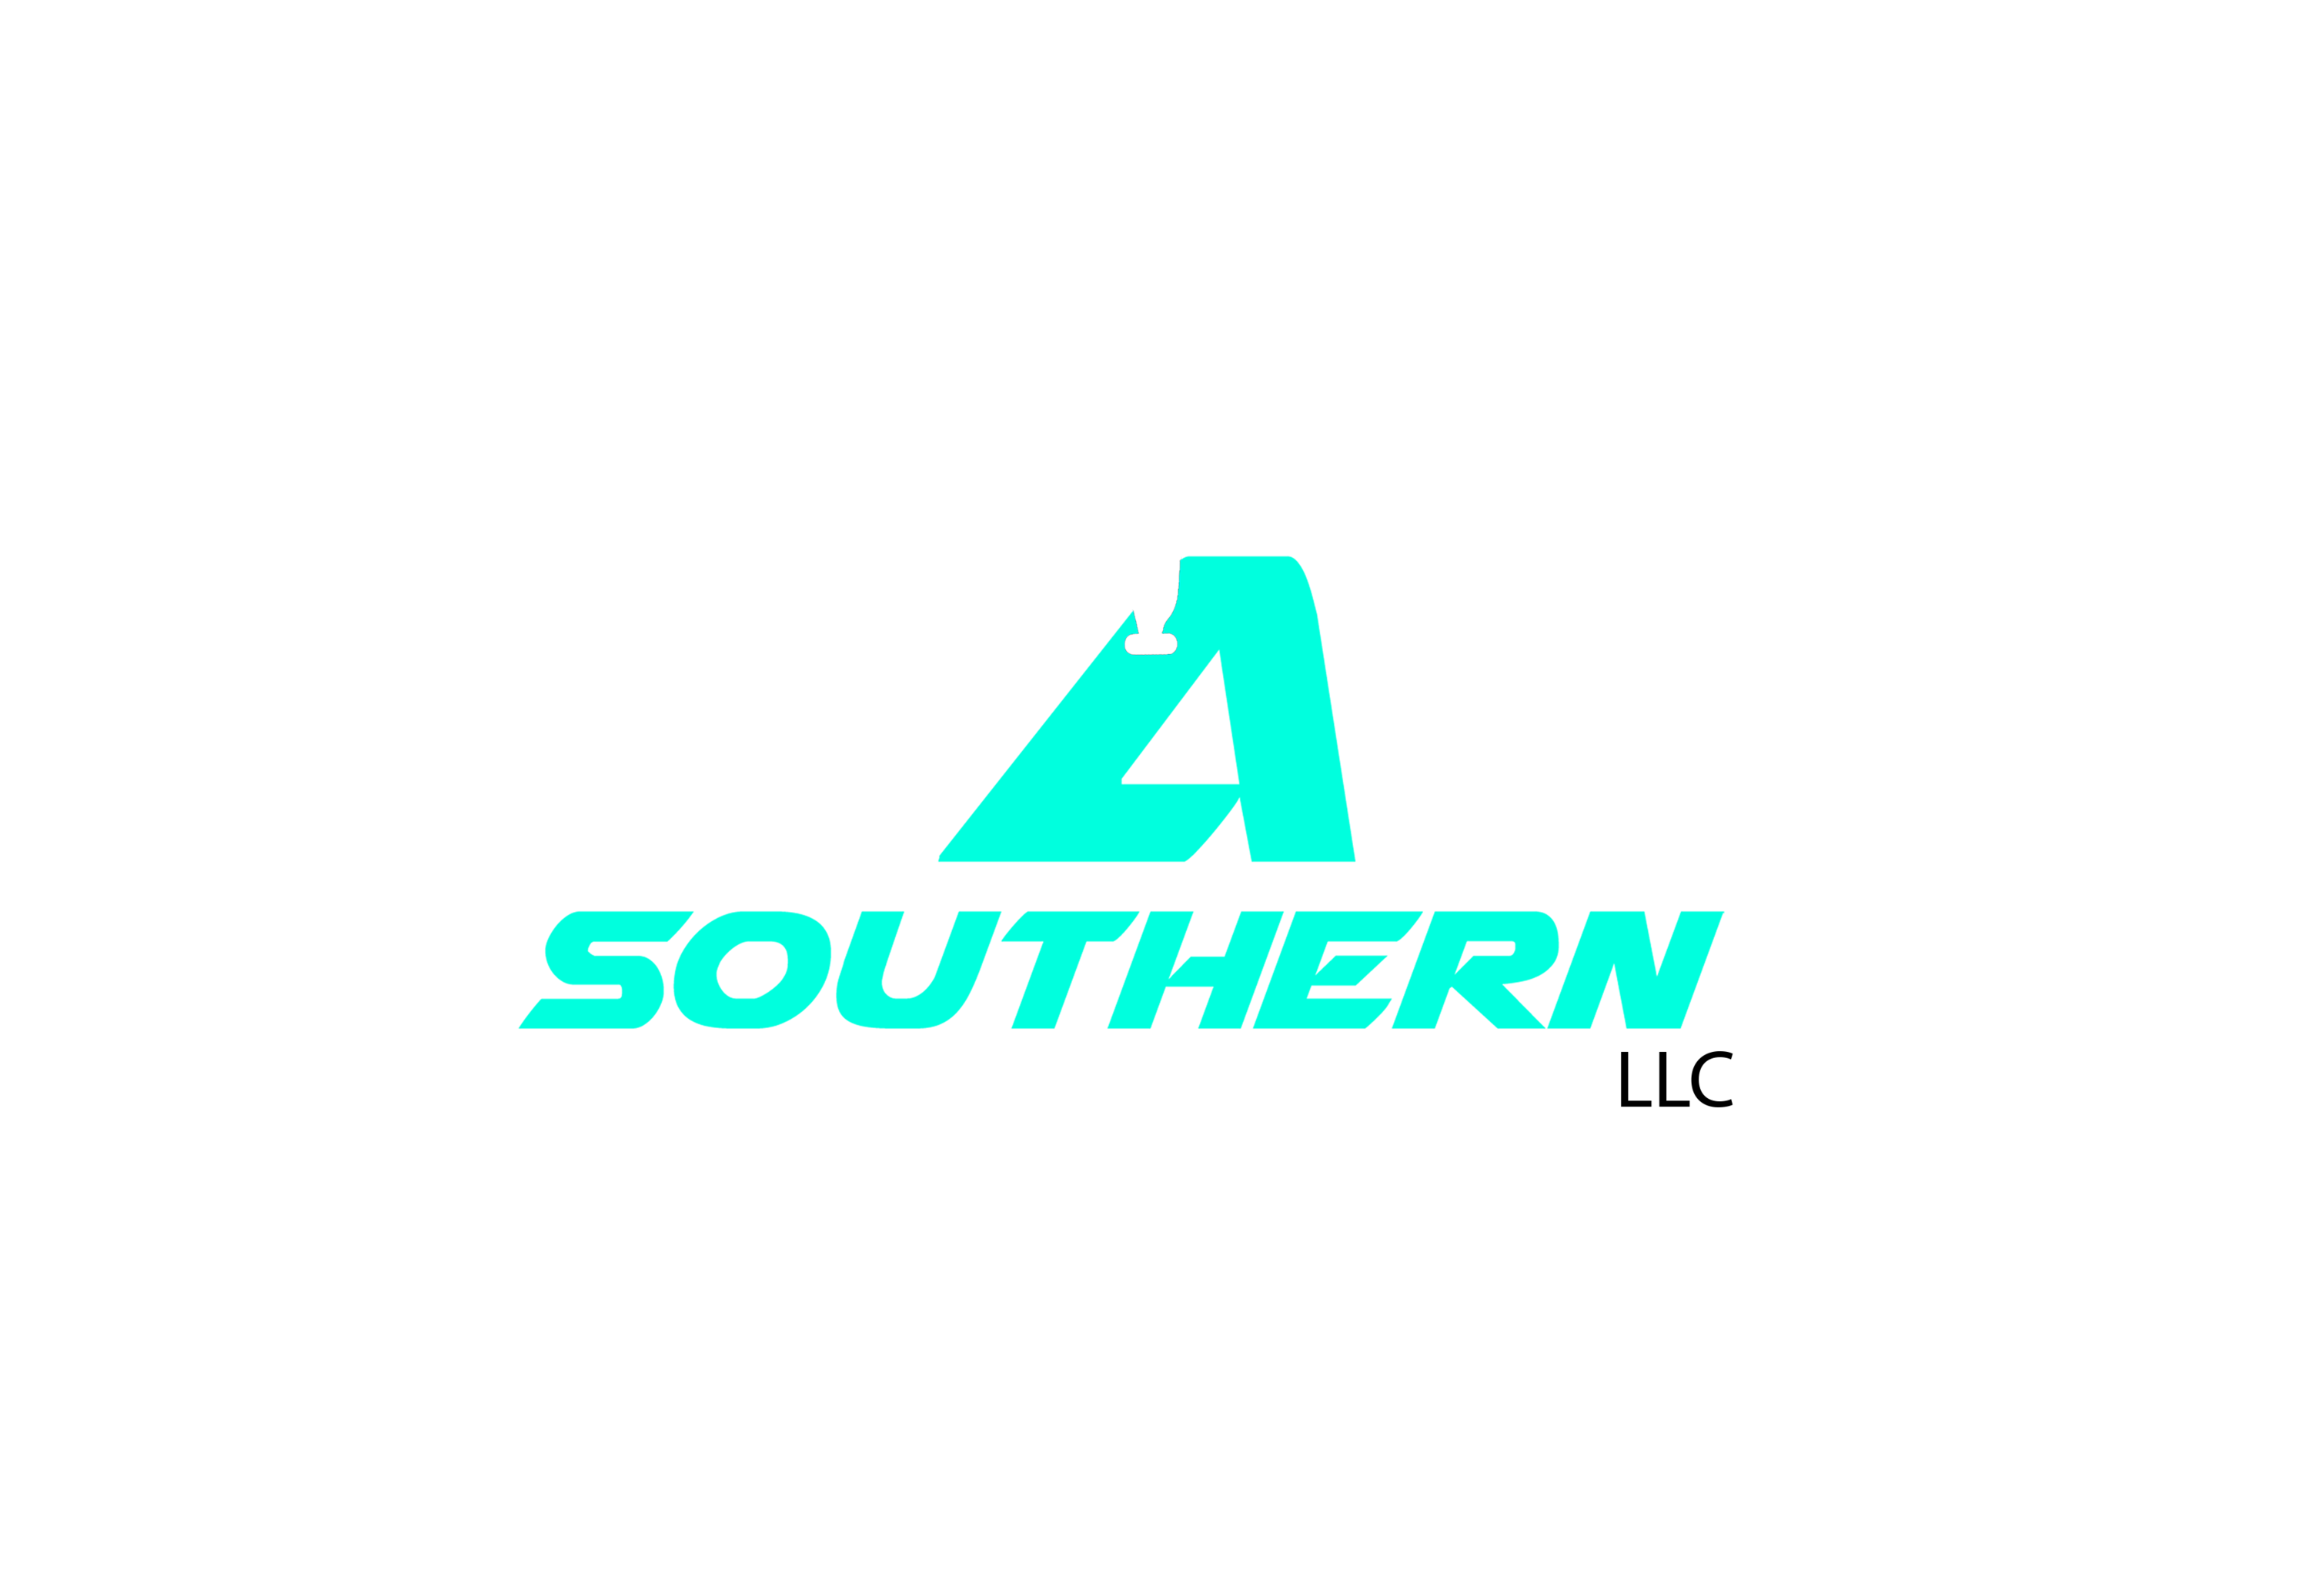 Southern American Remodeling Serving The Mid South